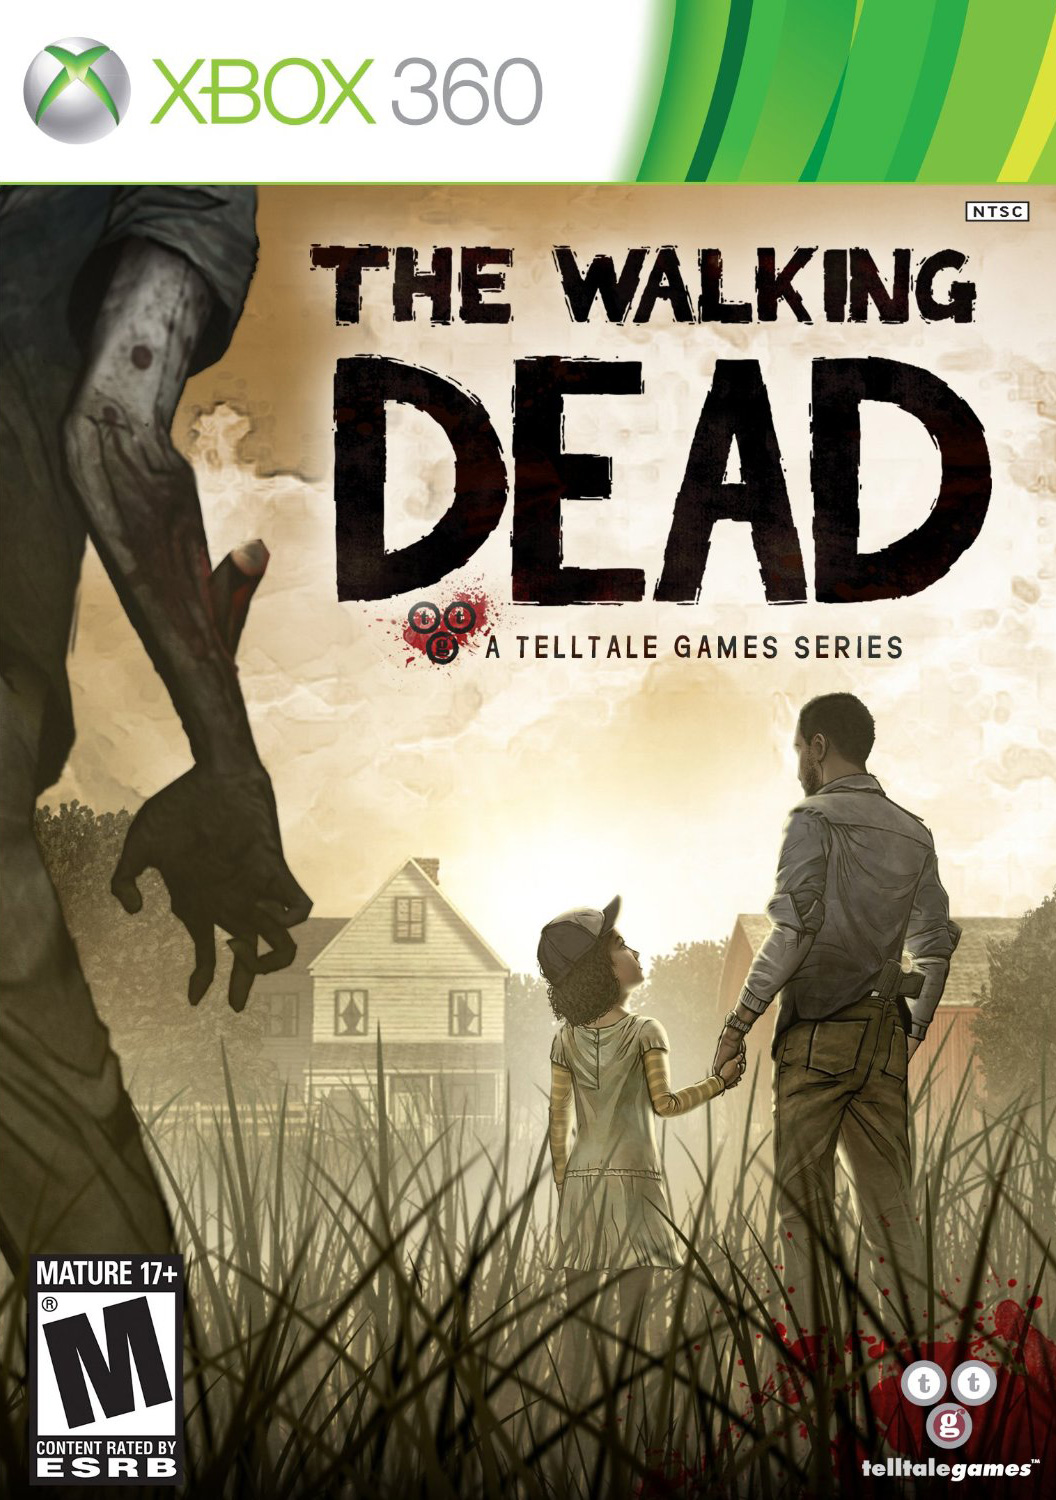 The Walking Dead: The Game NTSC (Xbox 360)